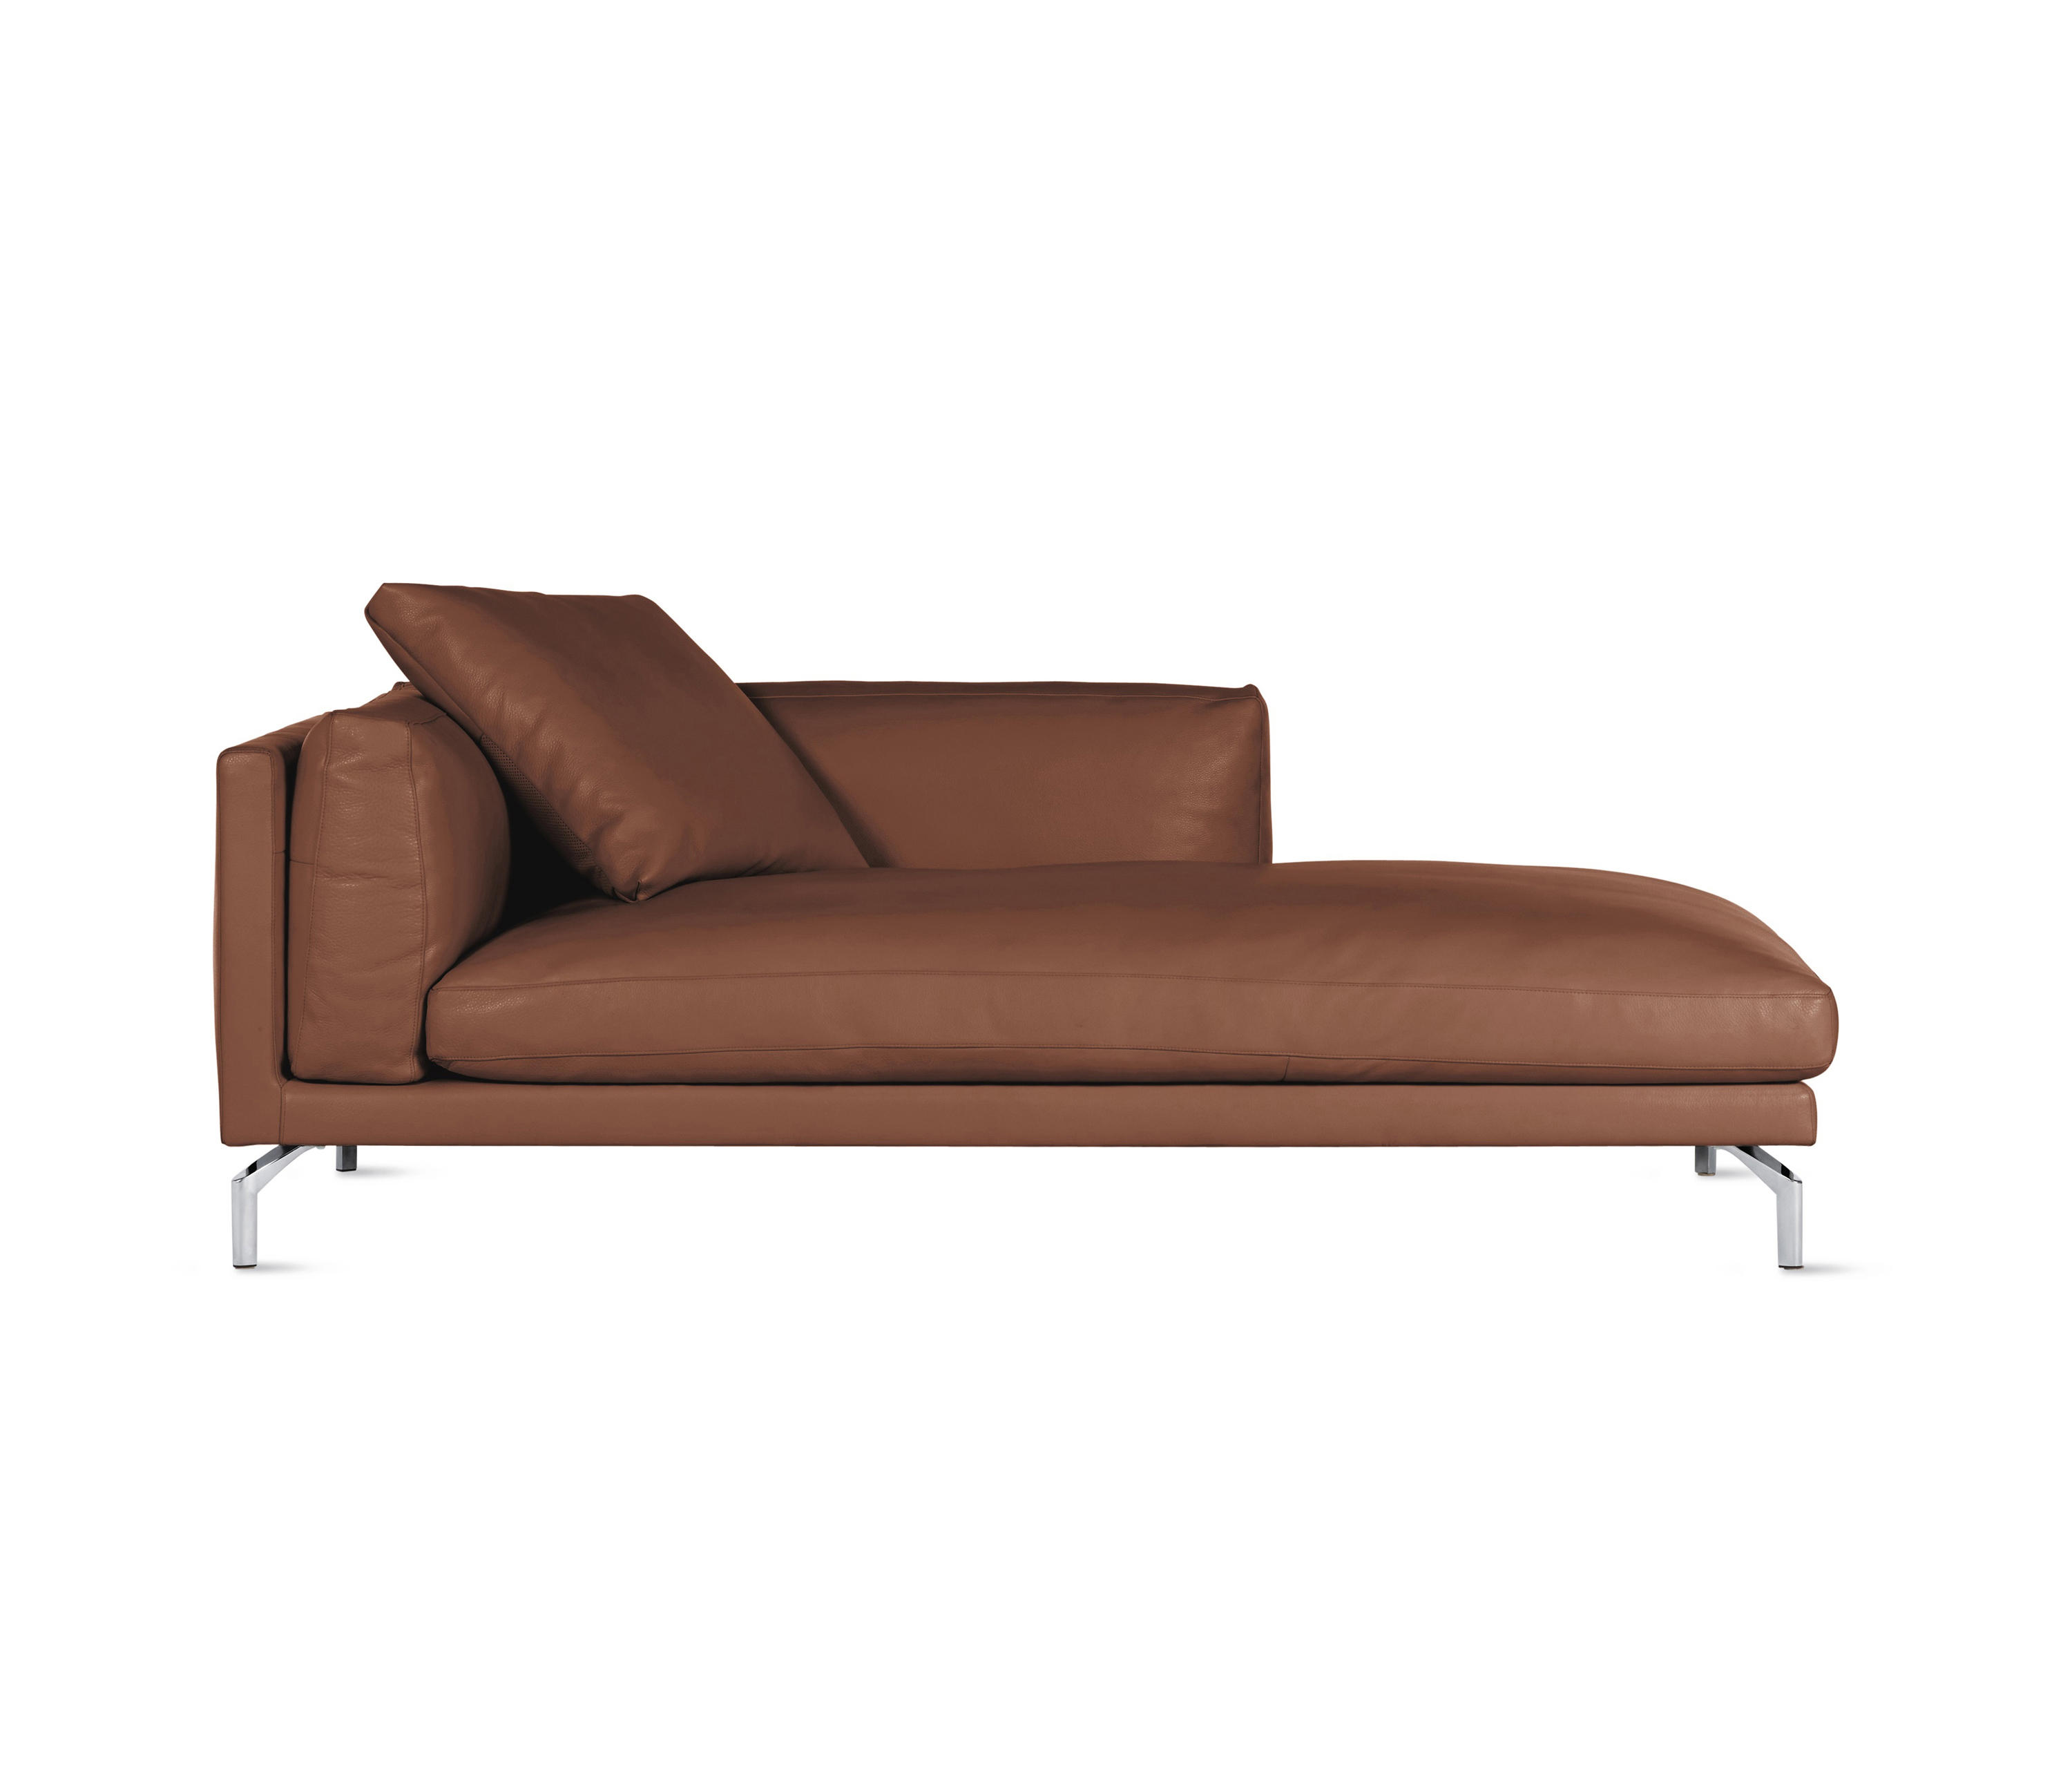 Como chaise in leather right recamieres from design within reach architonic for Chaise designe